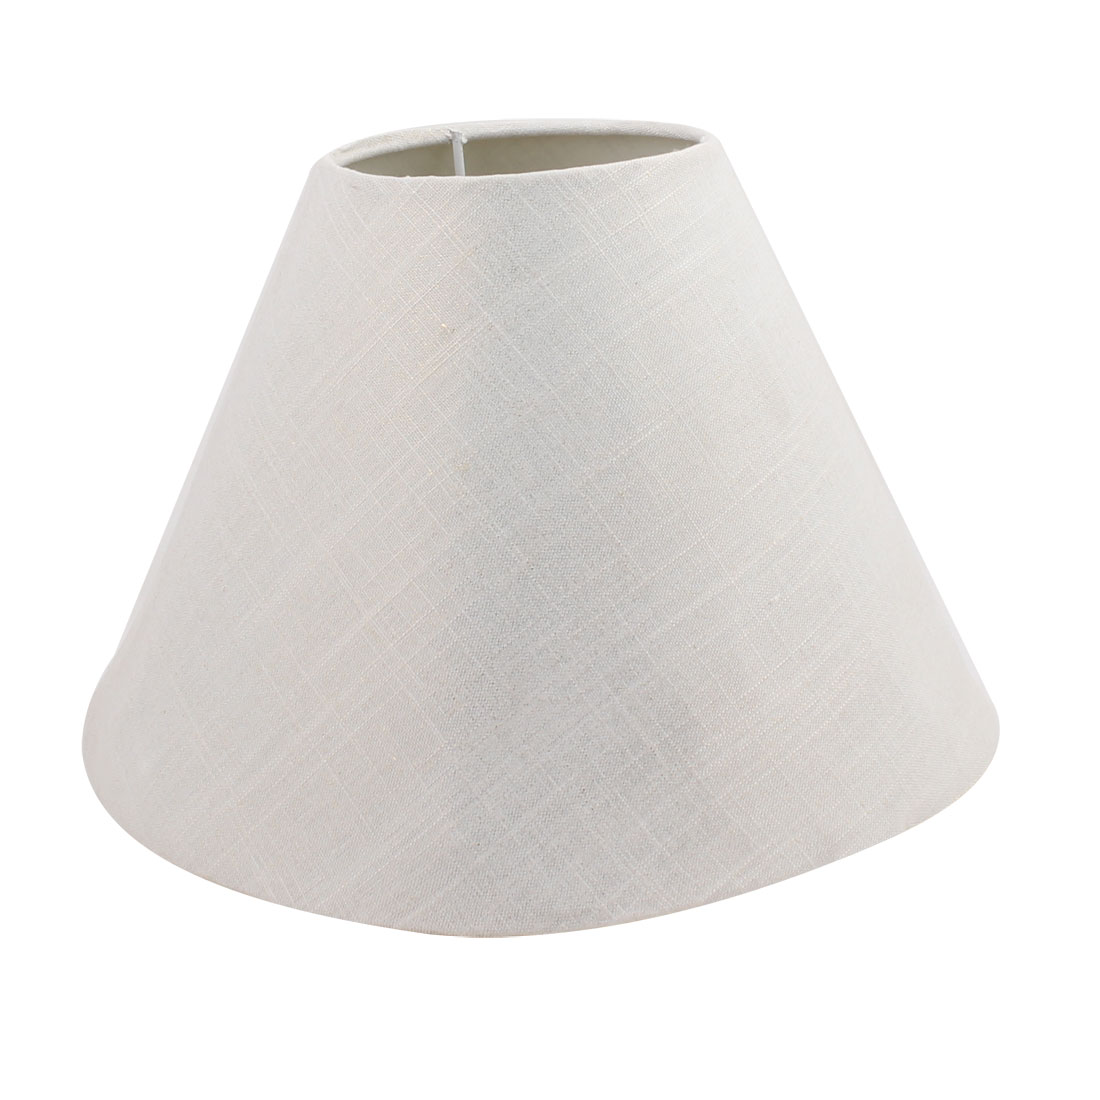 110mm x 260mm x 180mm Creamy-white Fabric Shell Lamp Shade for Reading Lamp - image 2 of 2